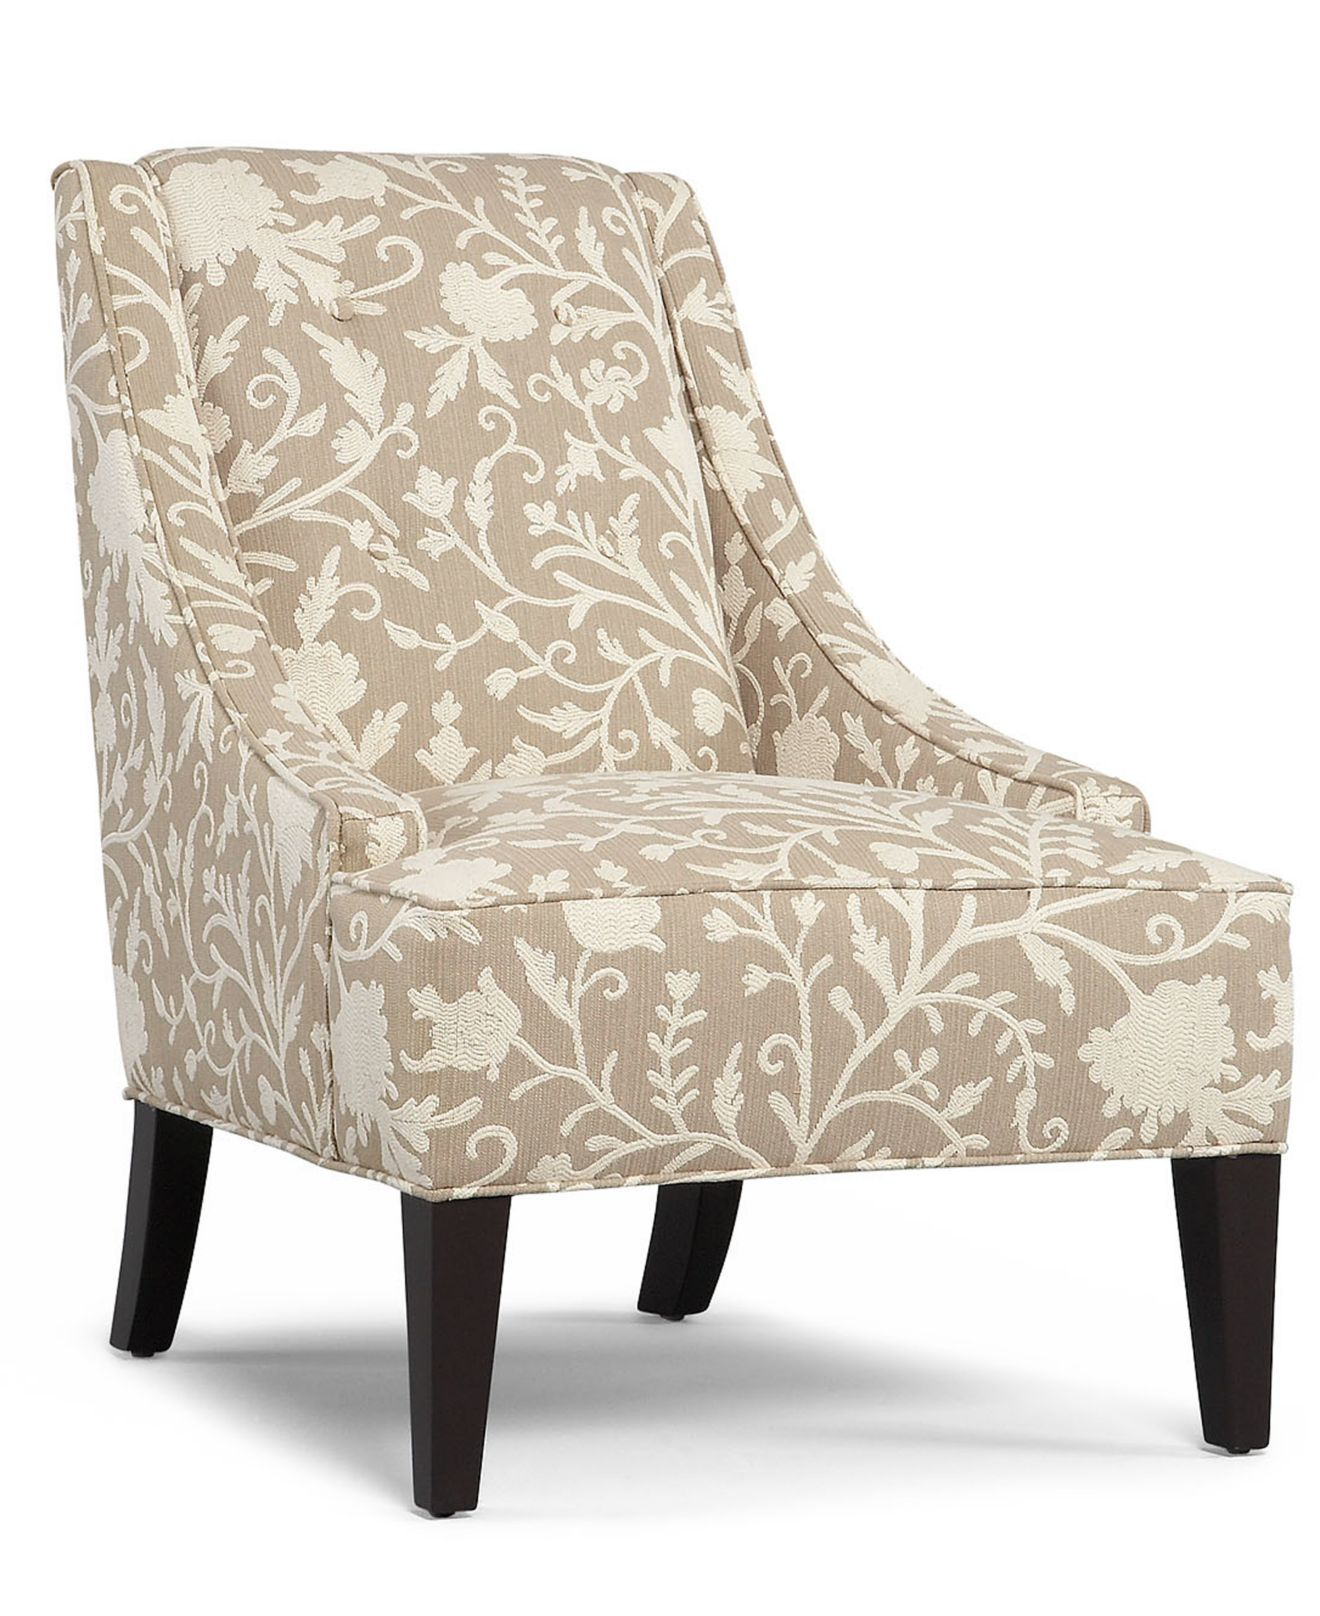 Martha Stewart Fabric Living Room Chair, Lansdale Accent: Custom ...